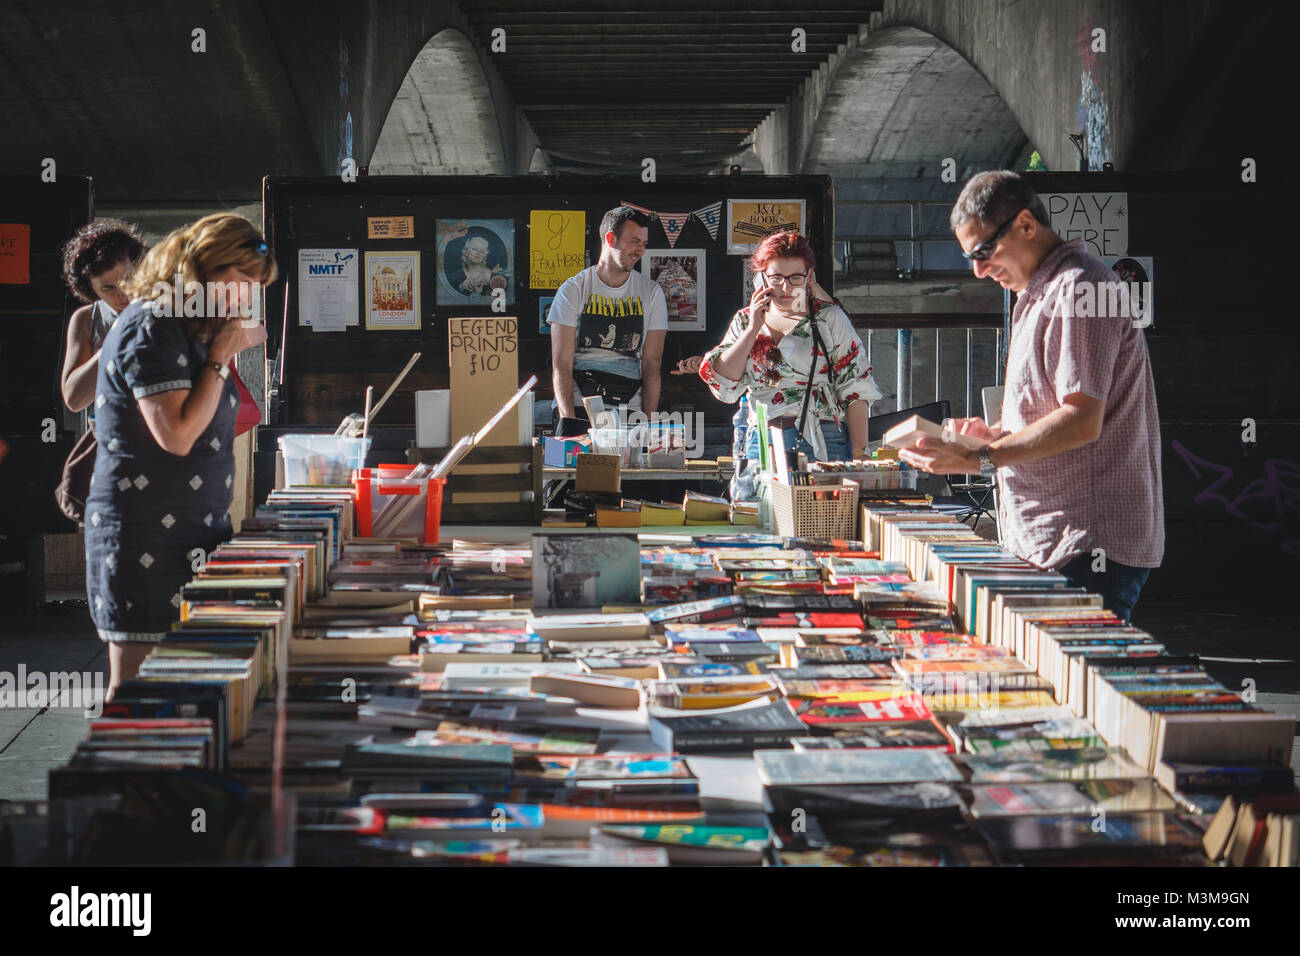 London (UK) - August 2017. Second hand books on sale in a stall on the South Bank. Landscape format. - Stock Image